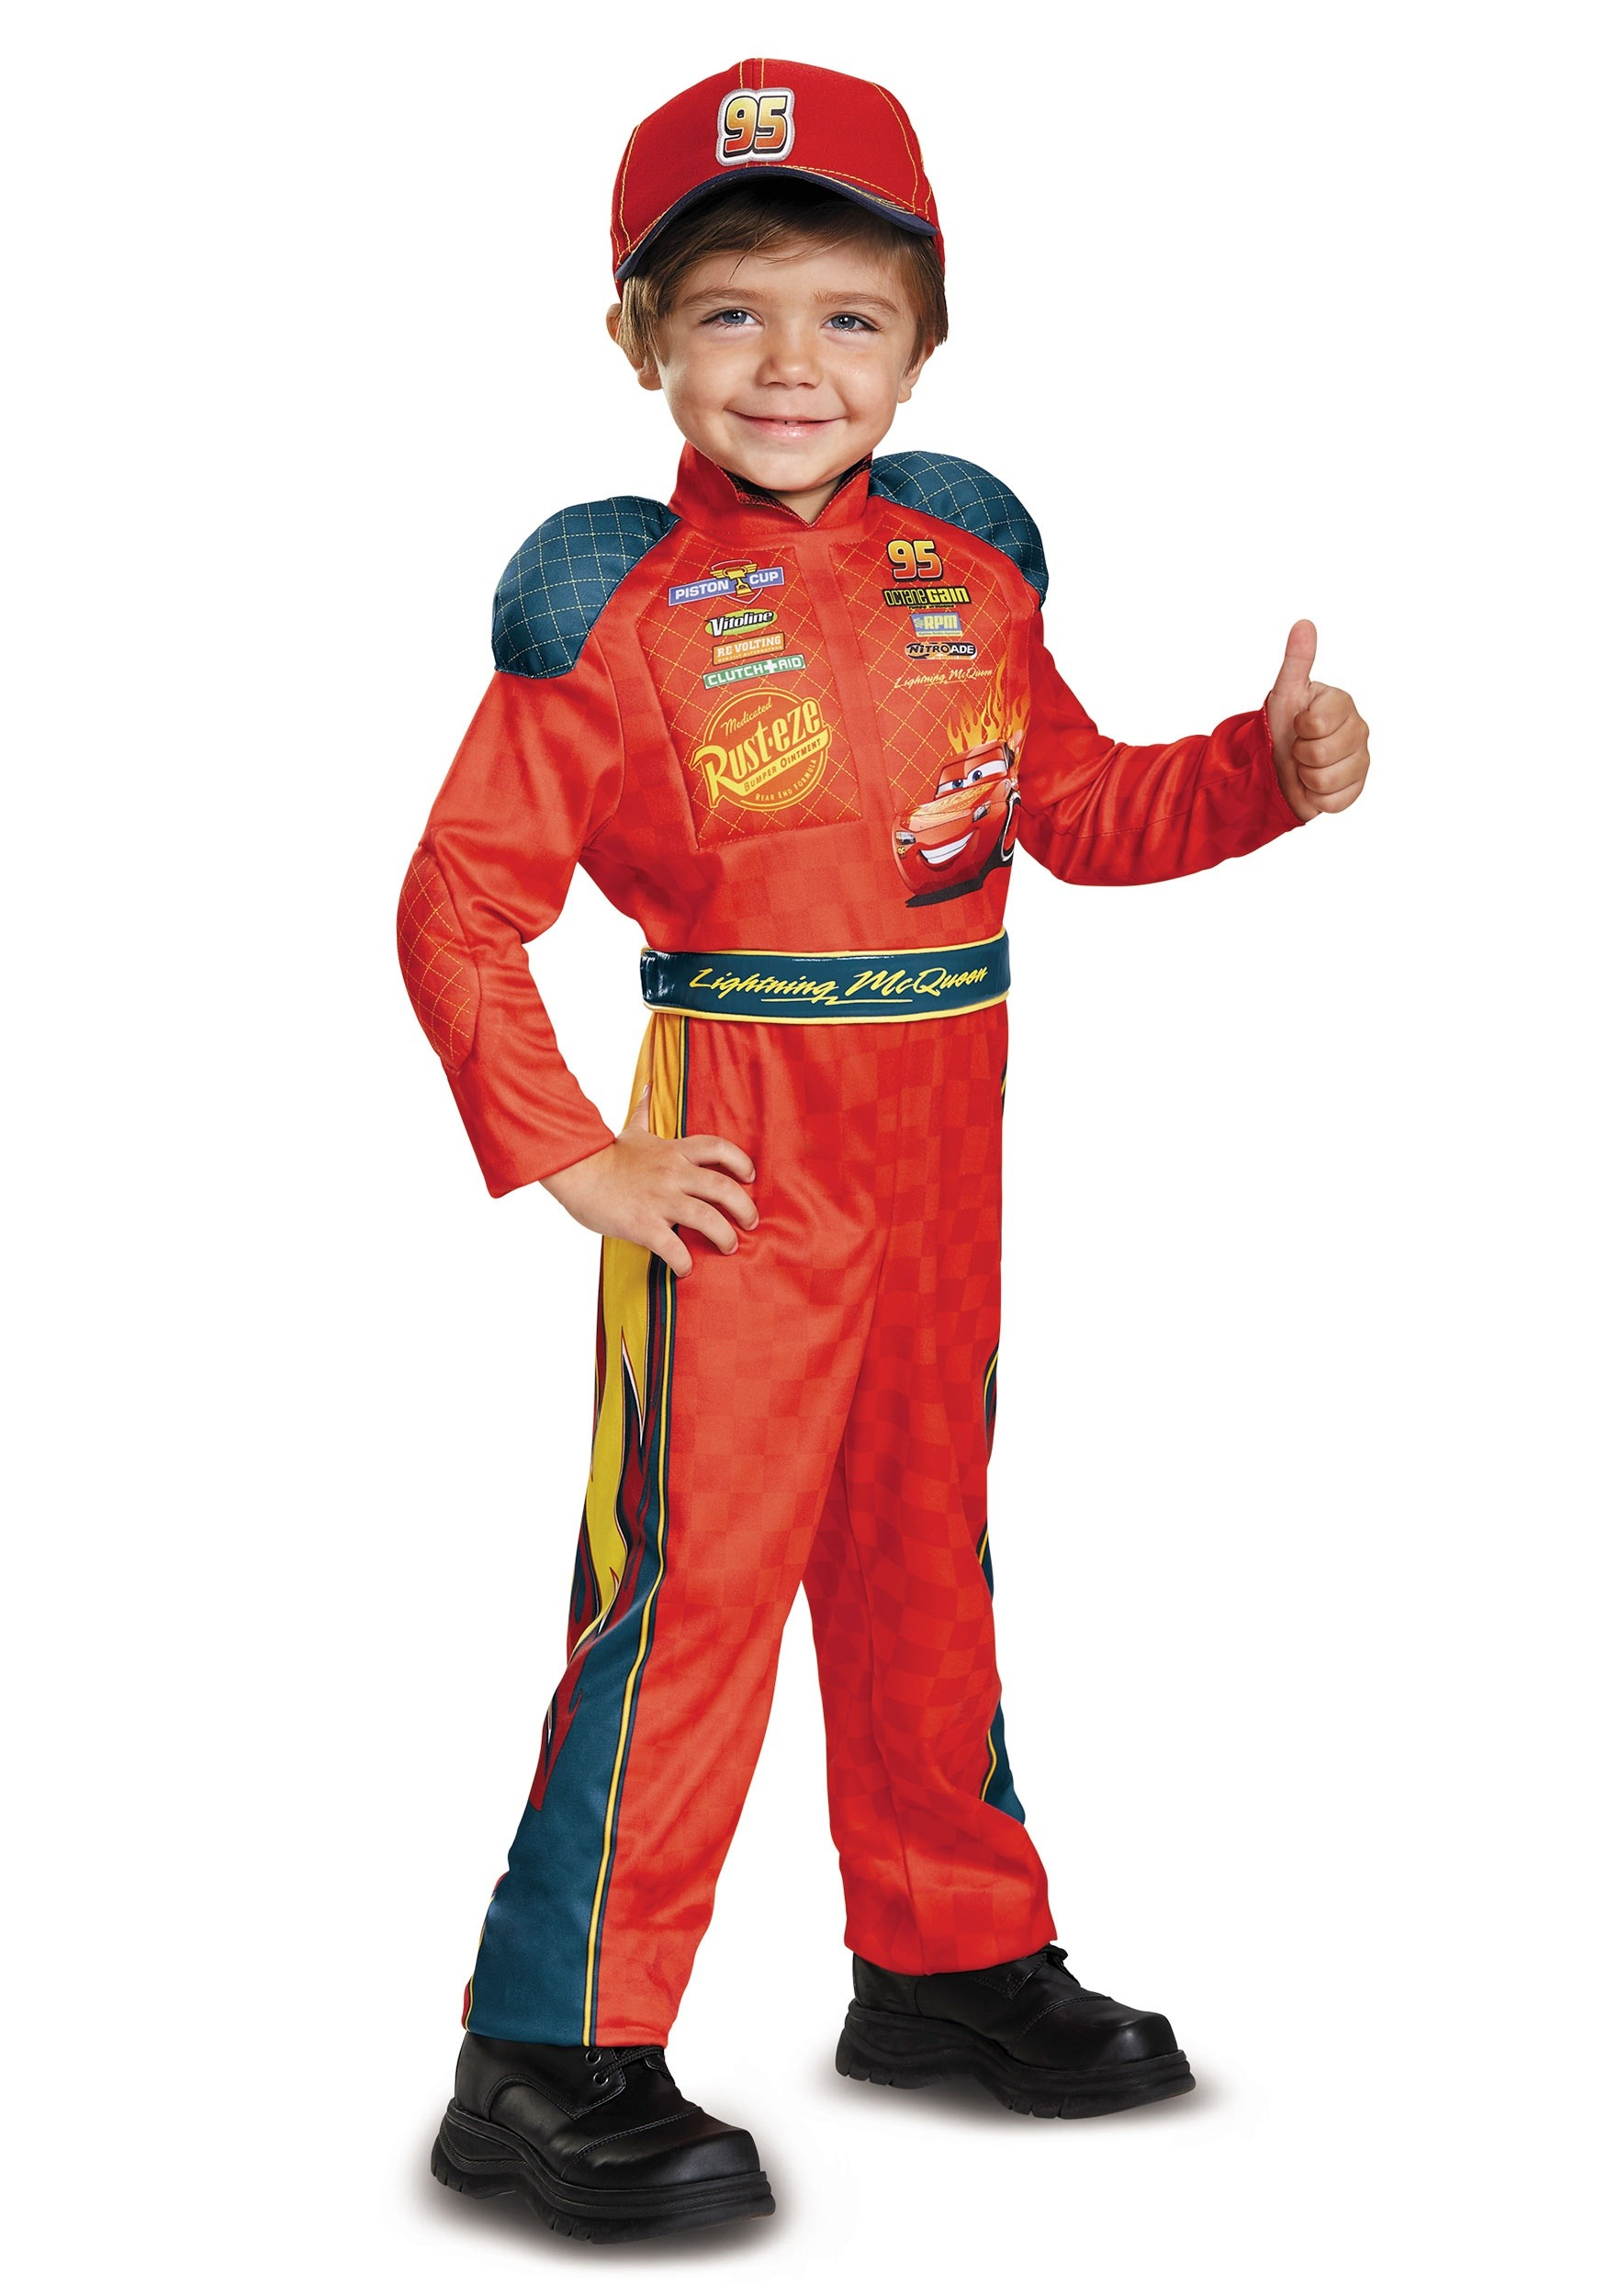 Lightning McQueen Classic Toddler Costume  sc 1 st  Halloween Costumes & Lightning McQueen Classic Toddler Costume from Cars